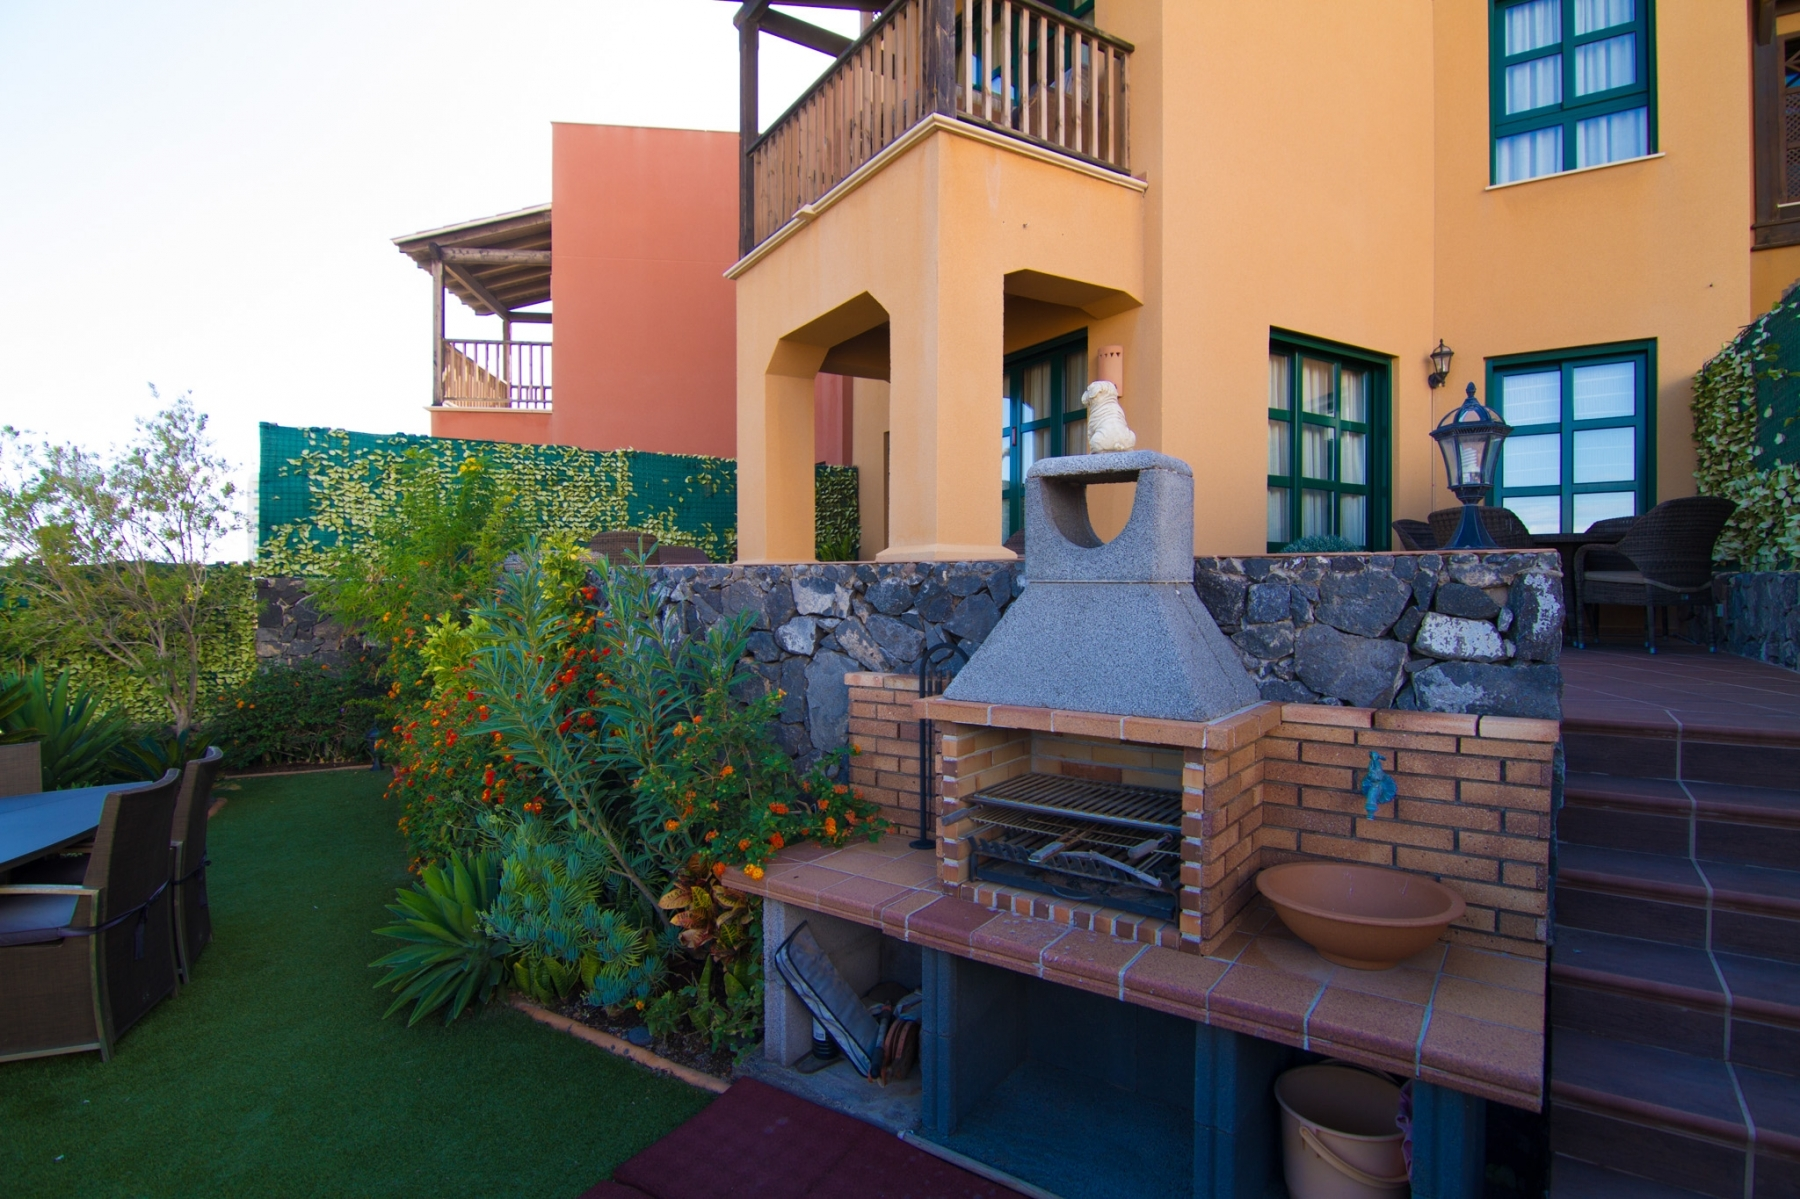 Properties for Sale in Tenerife, Canary Islands, Spain | SylkWayStar Real Estate. Luxury 3 bedrooms townhouse on the first line - San Blas . Image-22477